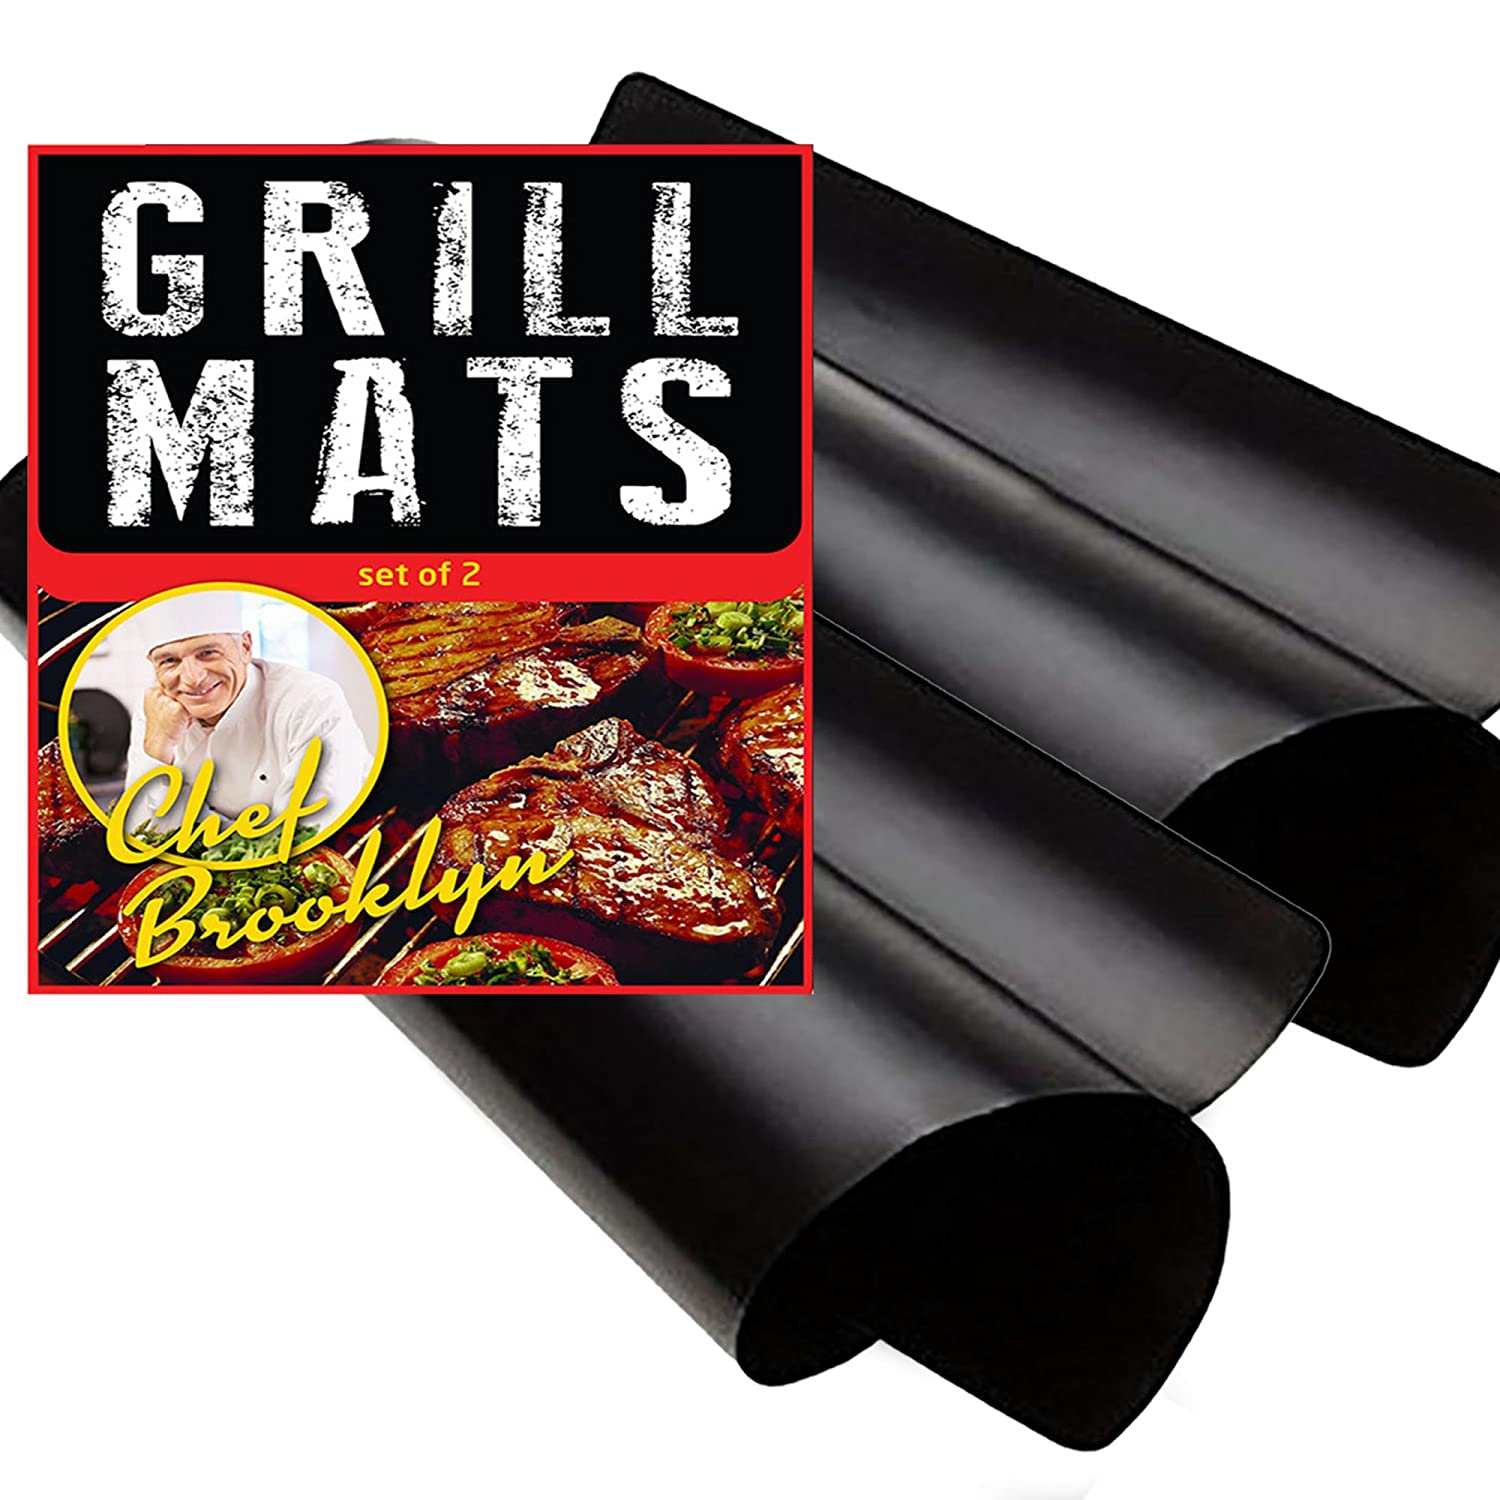 BBQ Grill Mats Non Stick Reusable - Set of 2 Heavy Duty Non-Stick Grilling Mats 16x13 Inch Ideal for Gas, Charcoal, Oven or Electric Barbeques Great Gift for Dad Chef Brooklyn CB101